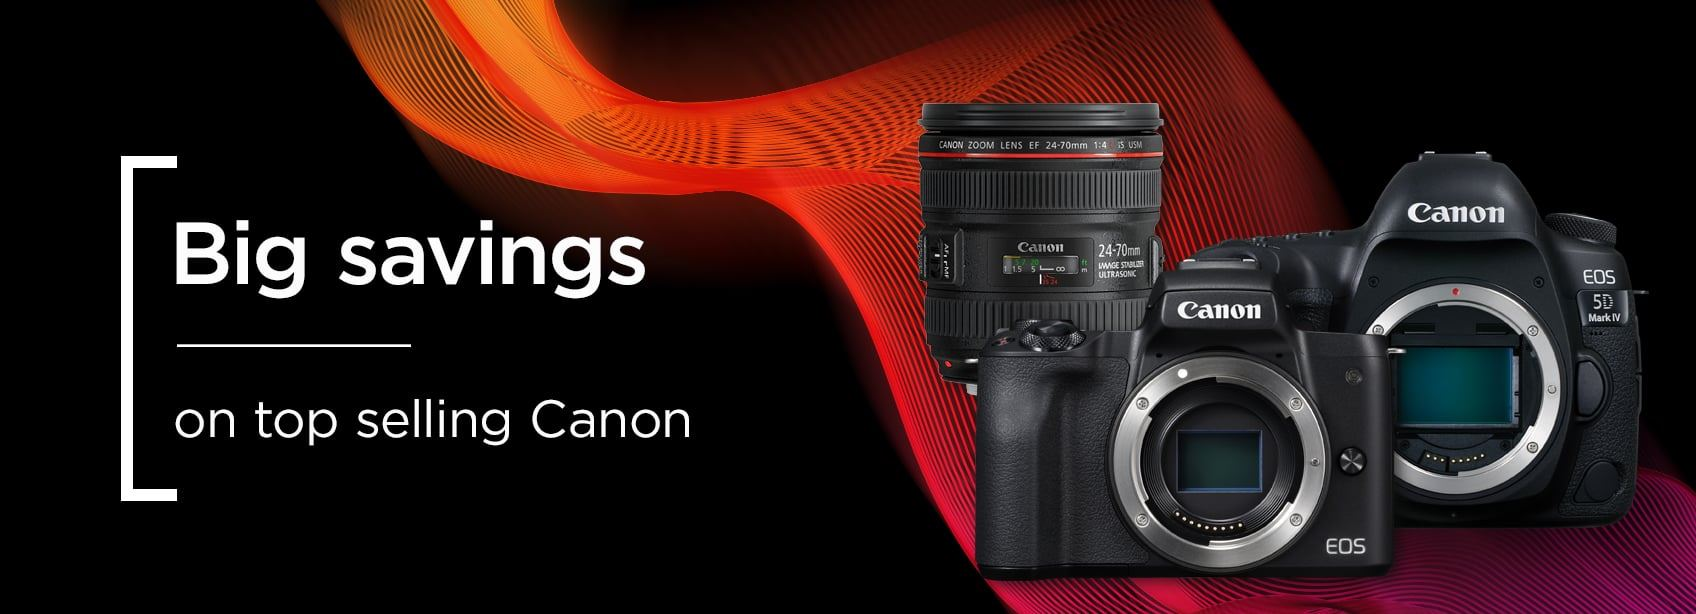 Big savings on top selling Canon